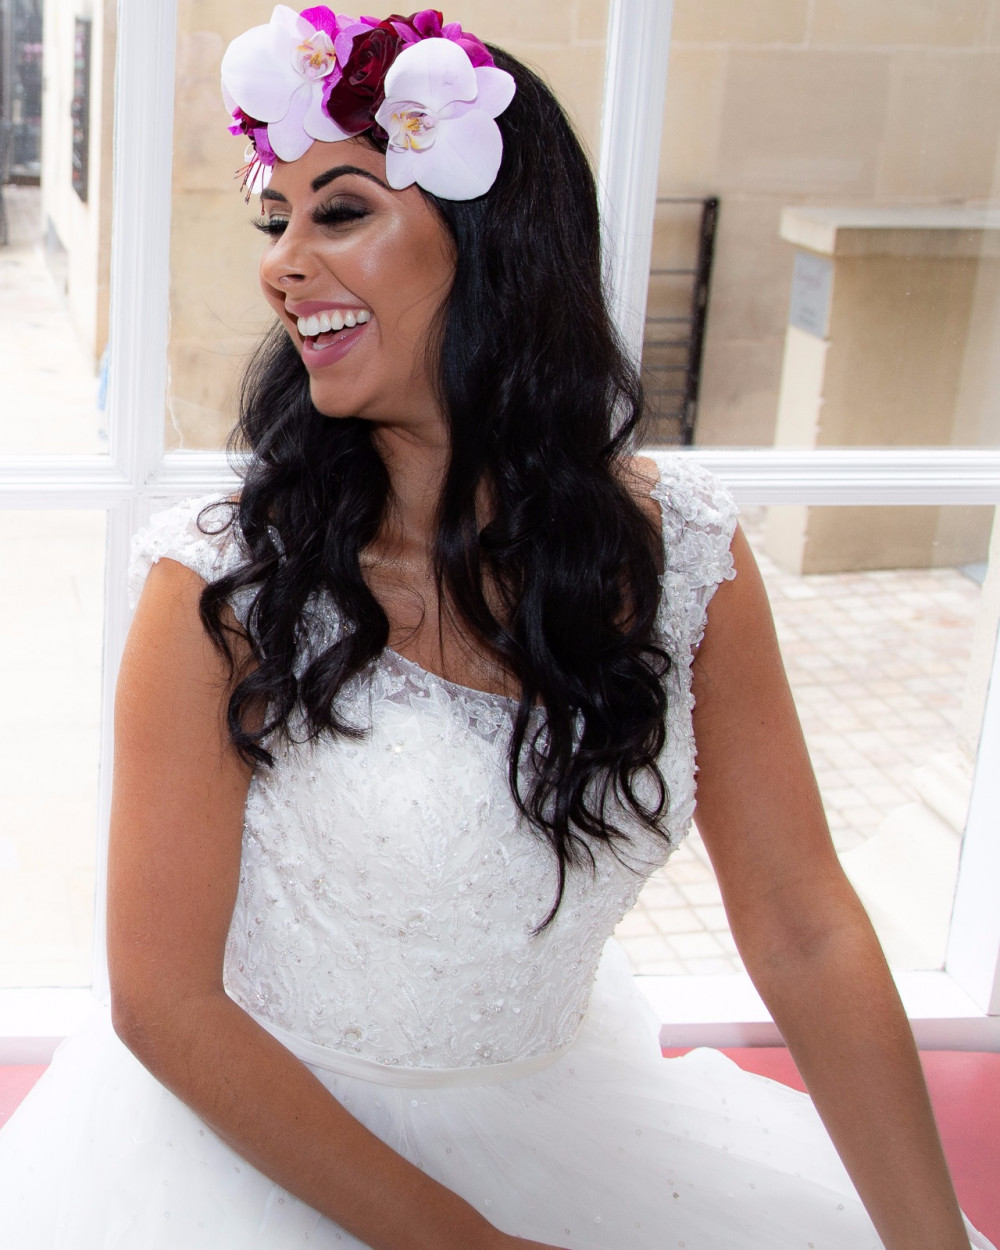 The prettiest thing a girl can wear is her smile x - Make Me Bridal Artist: Amy Collins Makeup Artist . Photography by: Rhian Grayson. #glamorous #flowercrown #nars #weddinginspo #mac